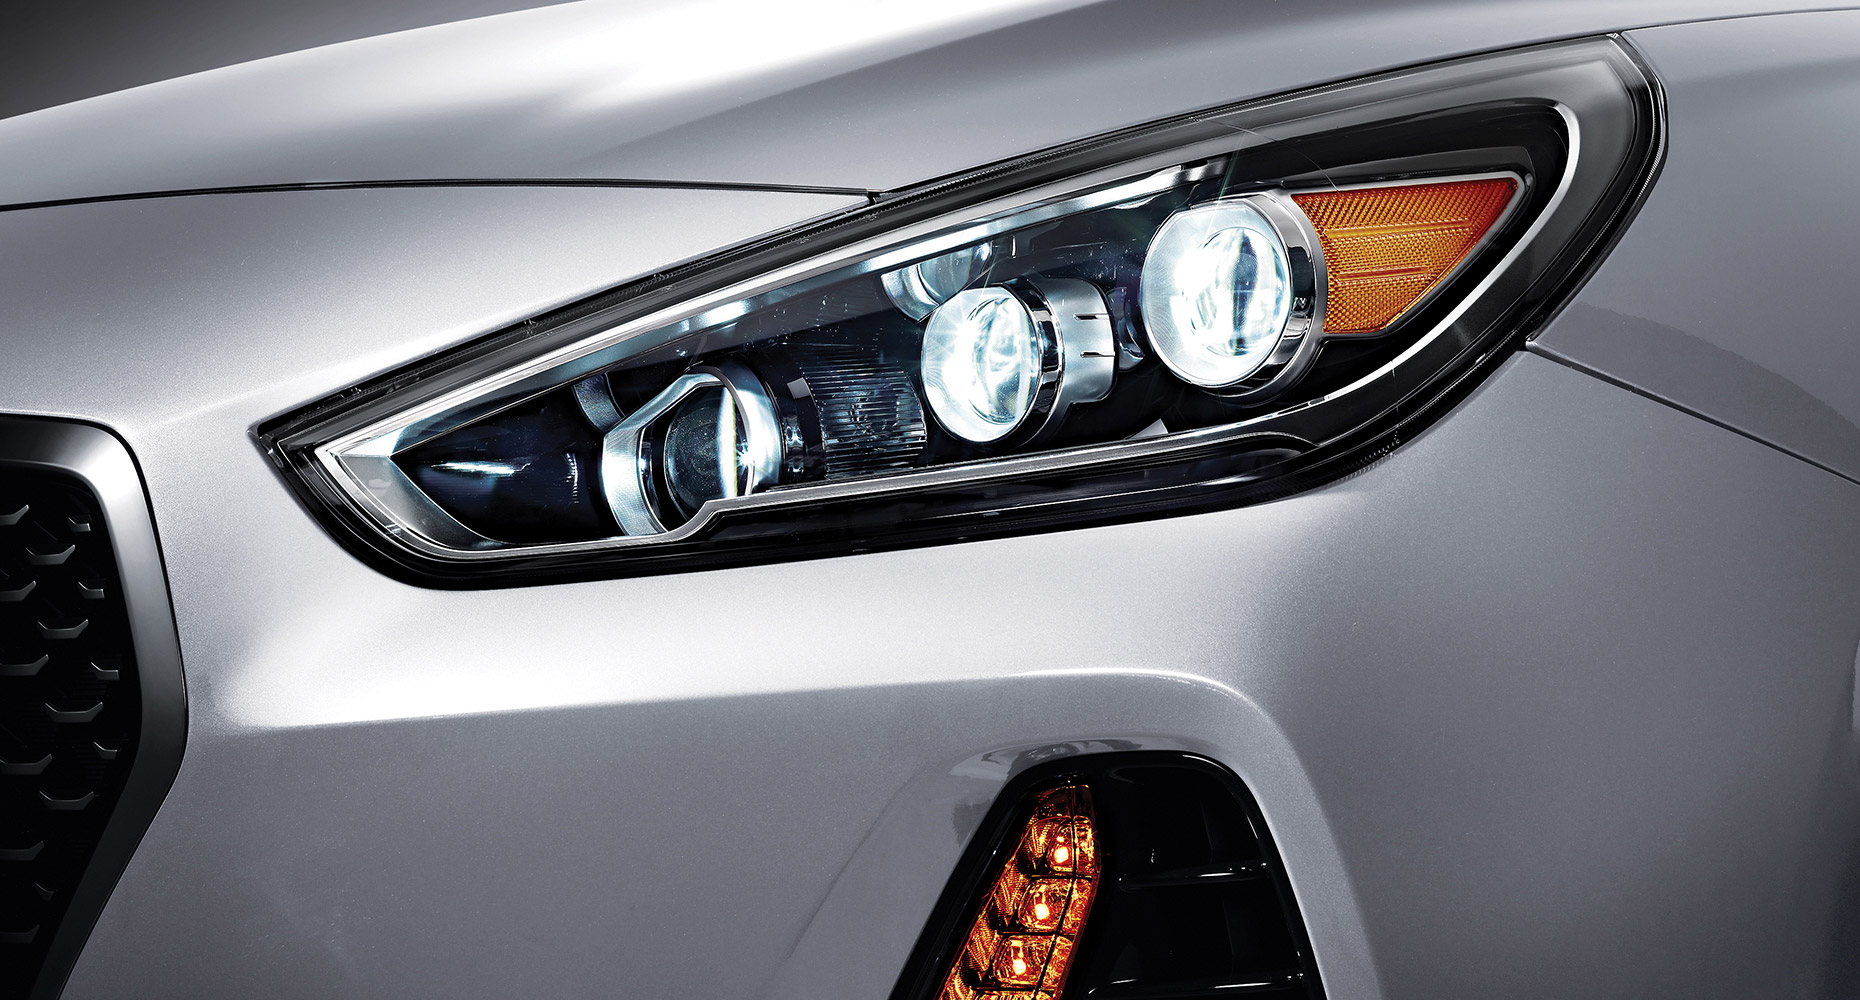 Full LED headlights with High Beam Assist